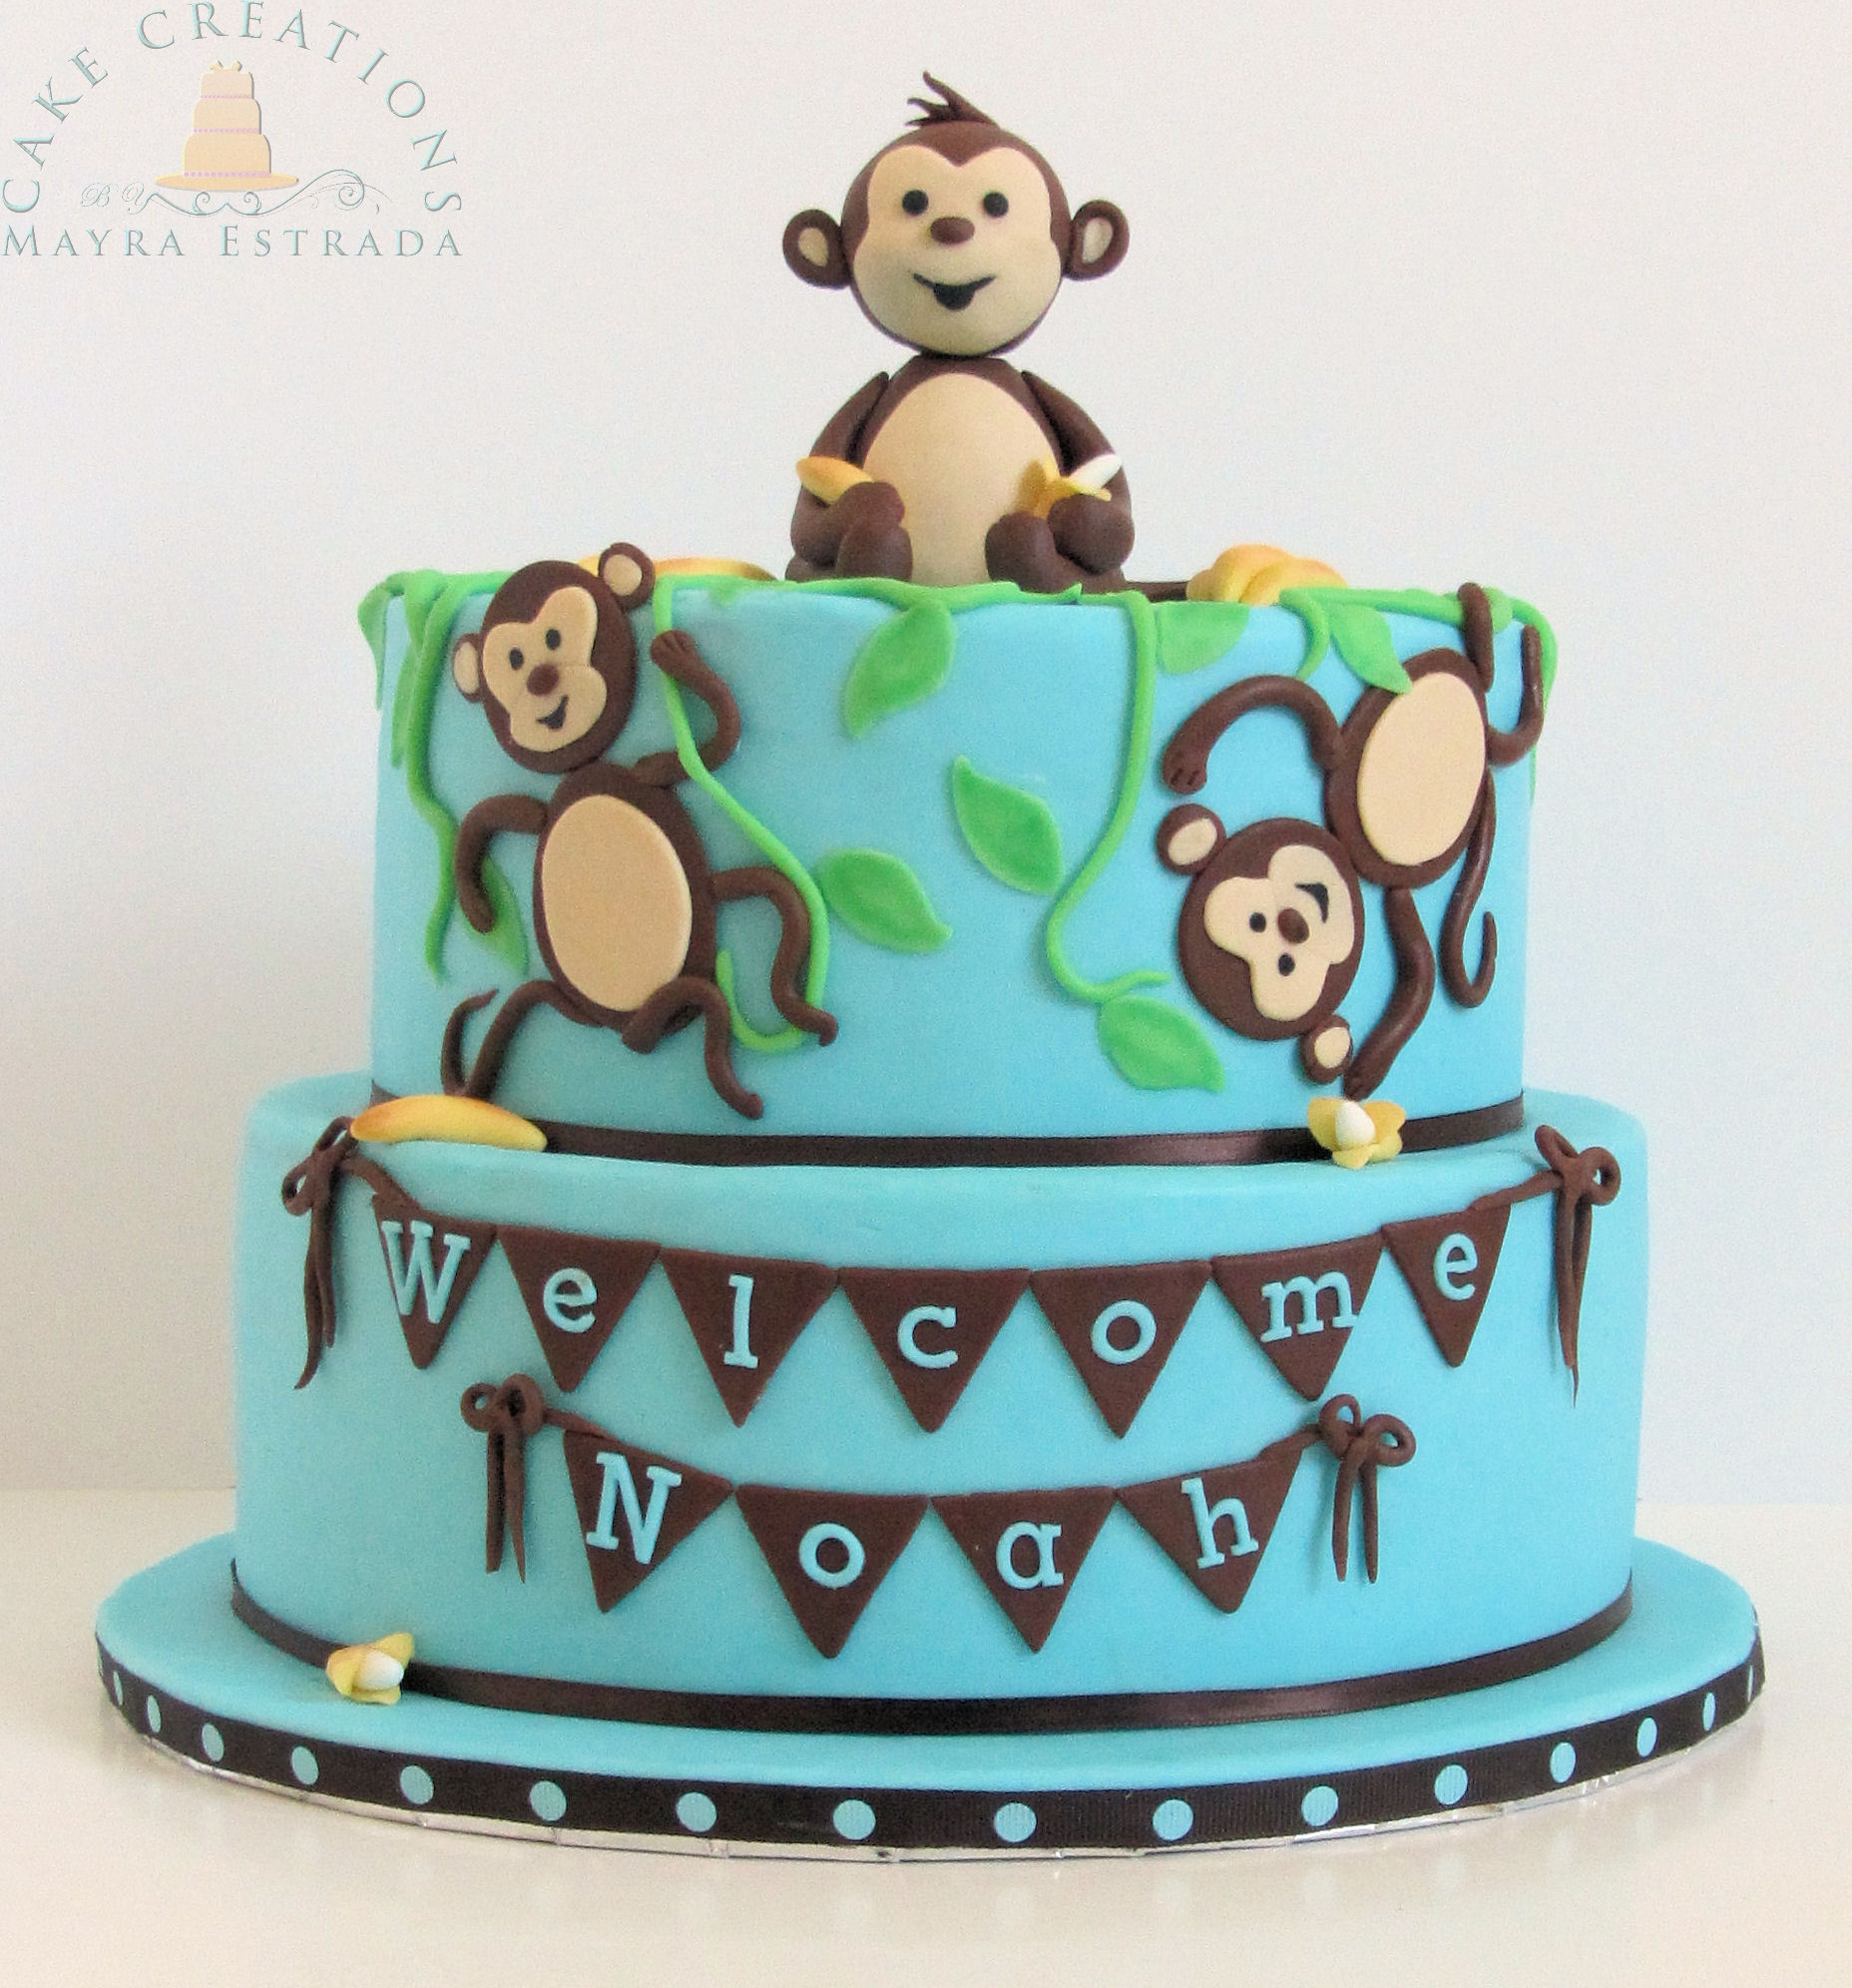 Monkeys bananas baby shower themed cake - Baby shower monkey theme cakes ...